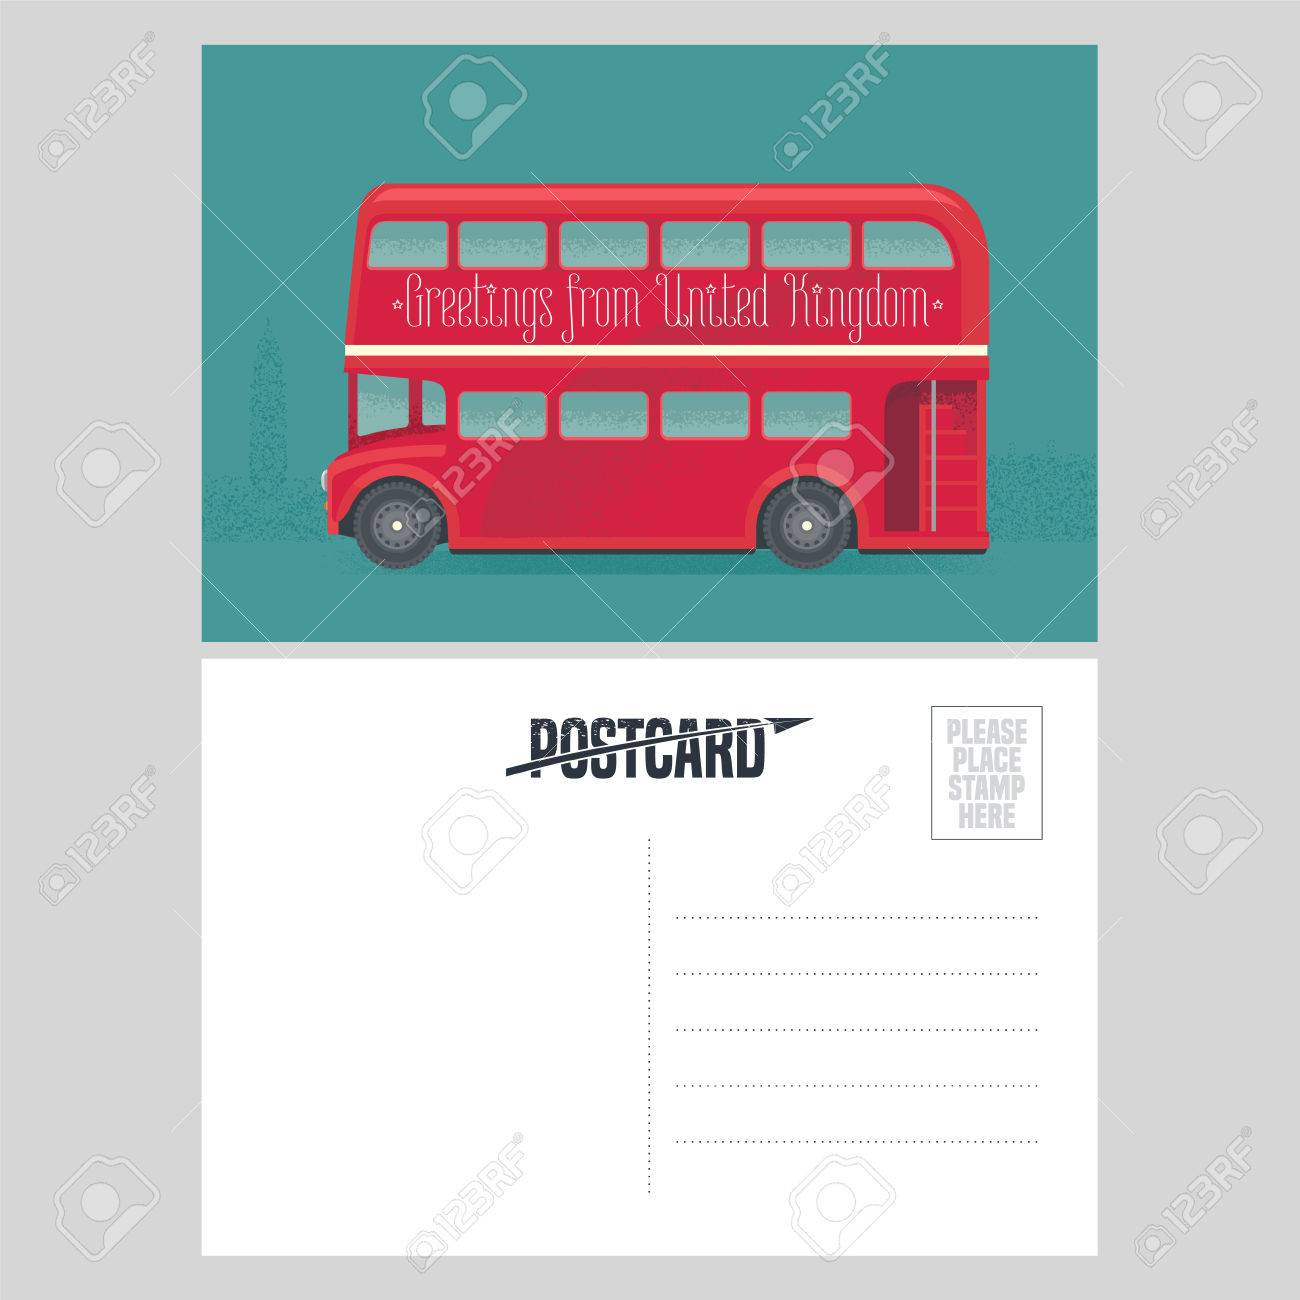 Postcard Template With Greetings From United Kingdom UK Red Double Decker Symbol